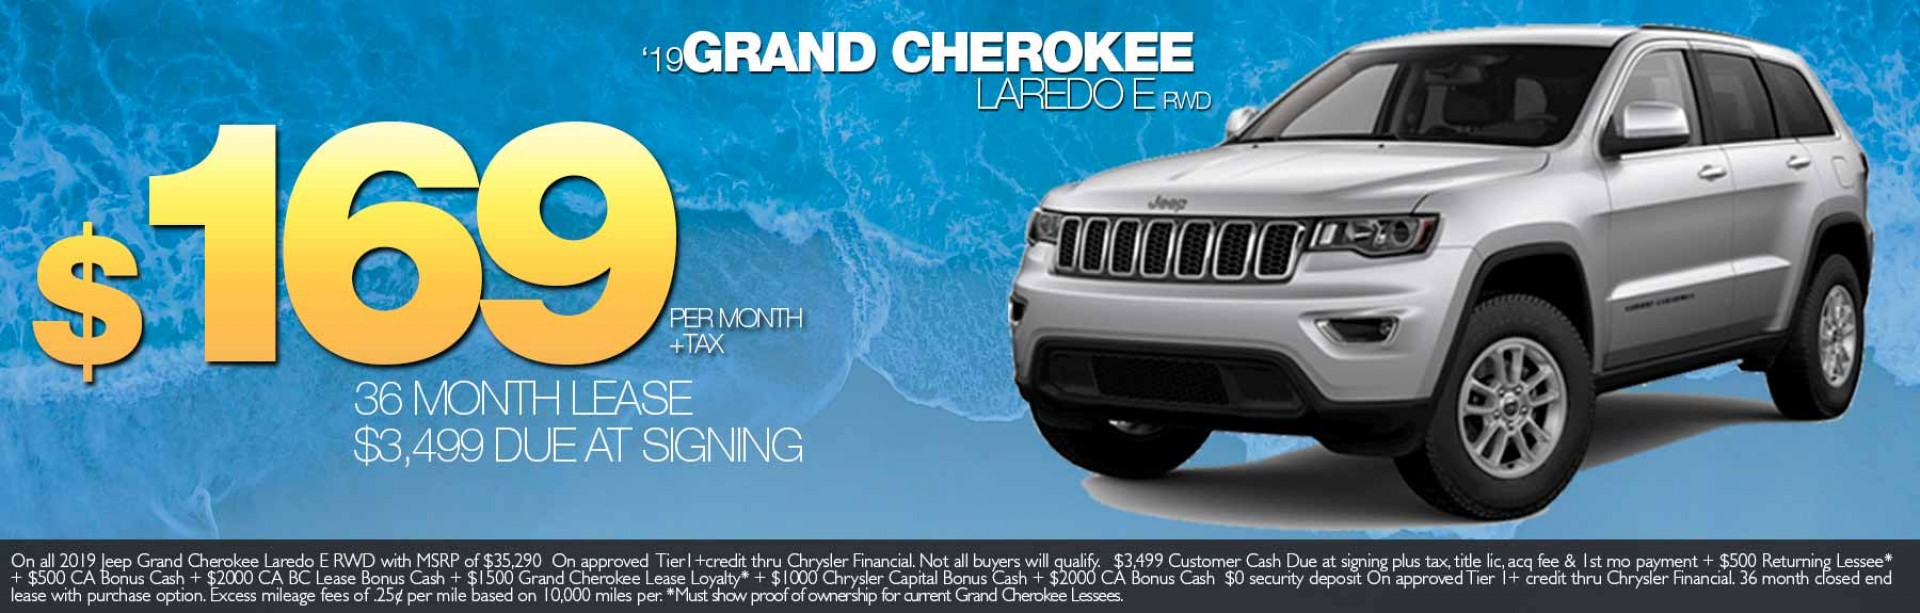 2019 Grand Cherokee Laredo E lease